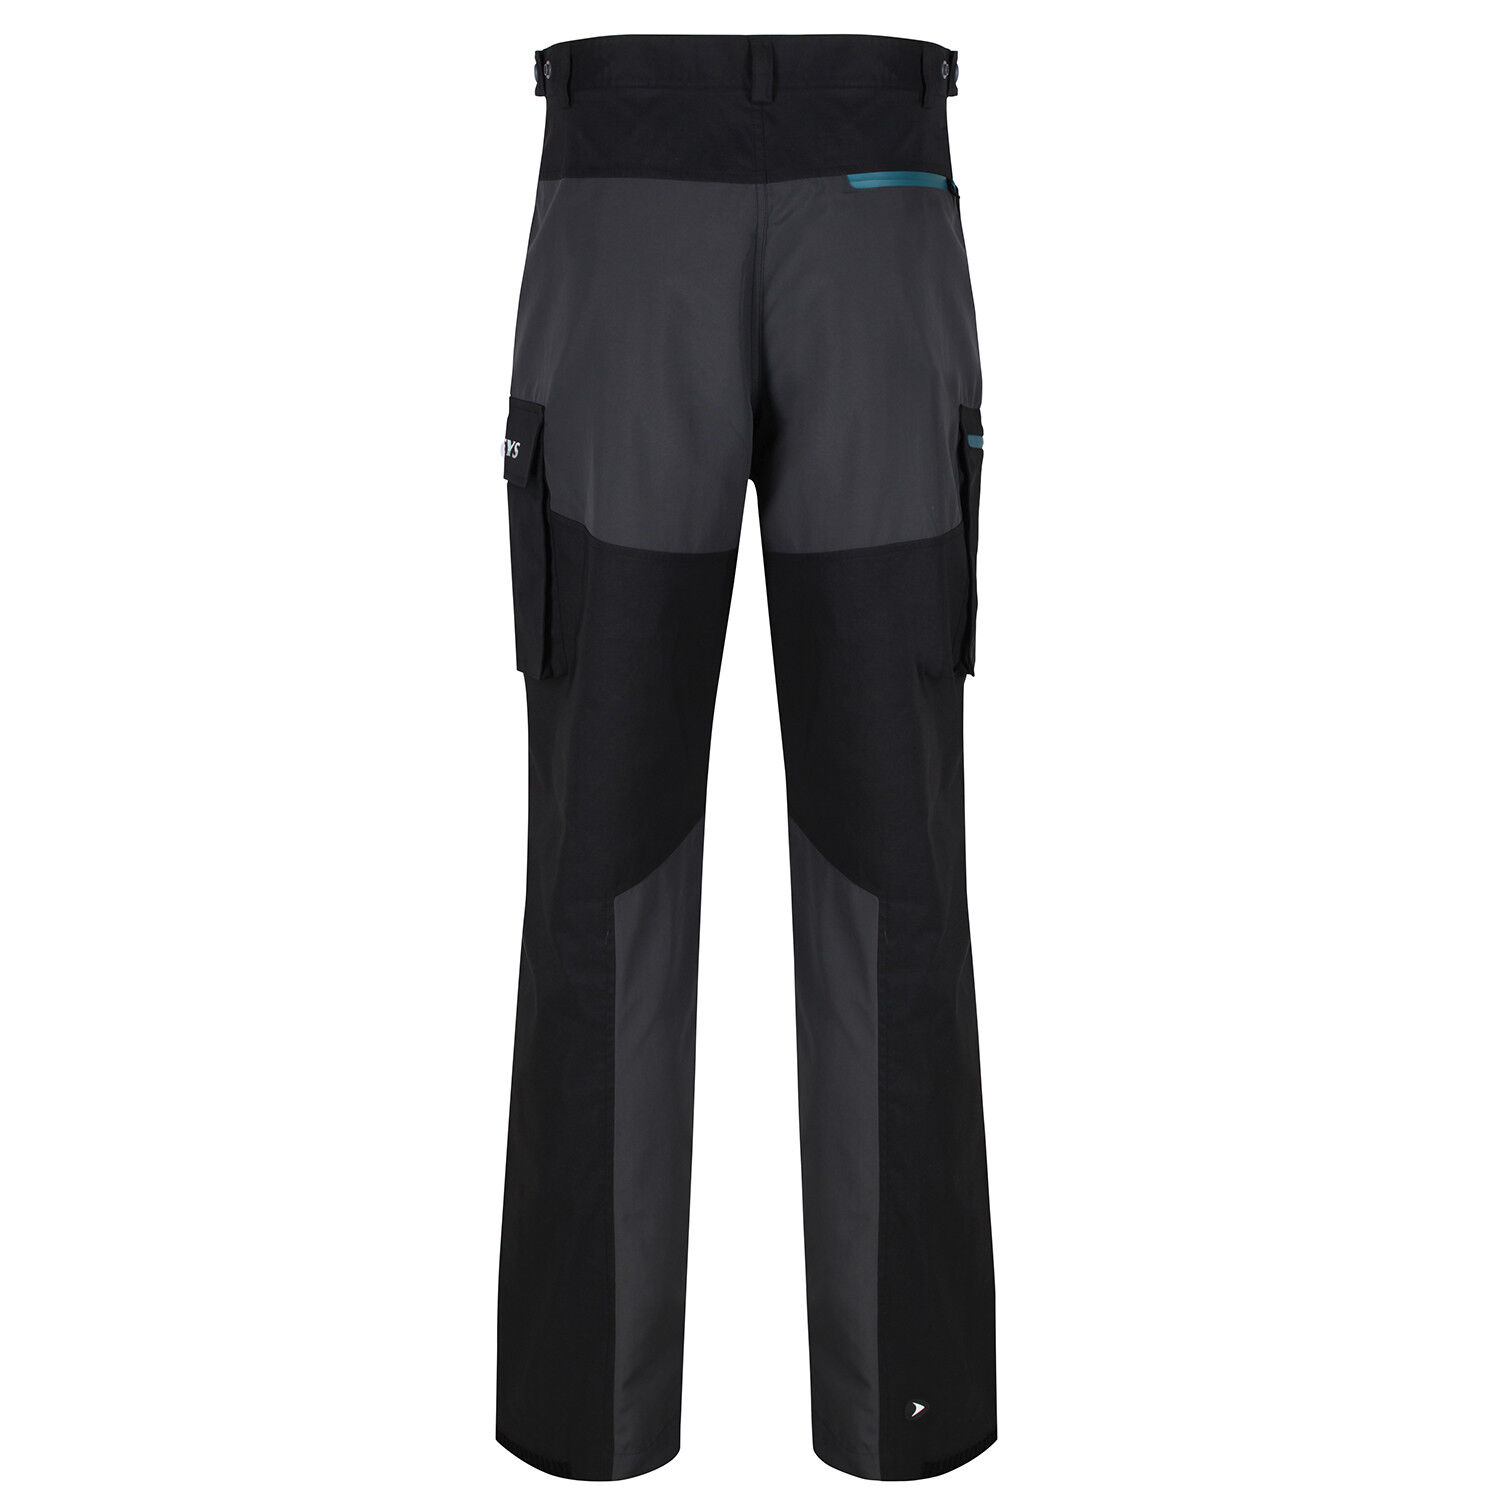 Graus Technical Fishing Trousers Lightweight Breathable Adjustable Adjustable Breathable NEW 2018 fb06ed